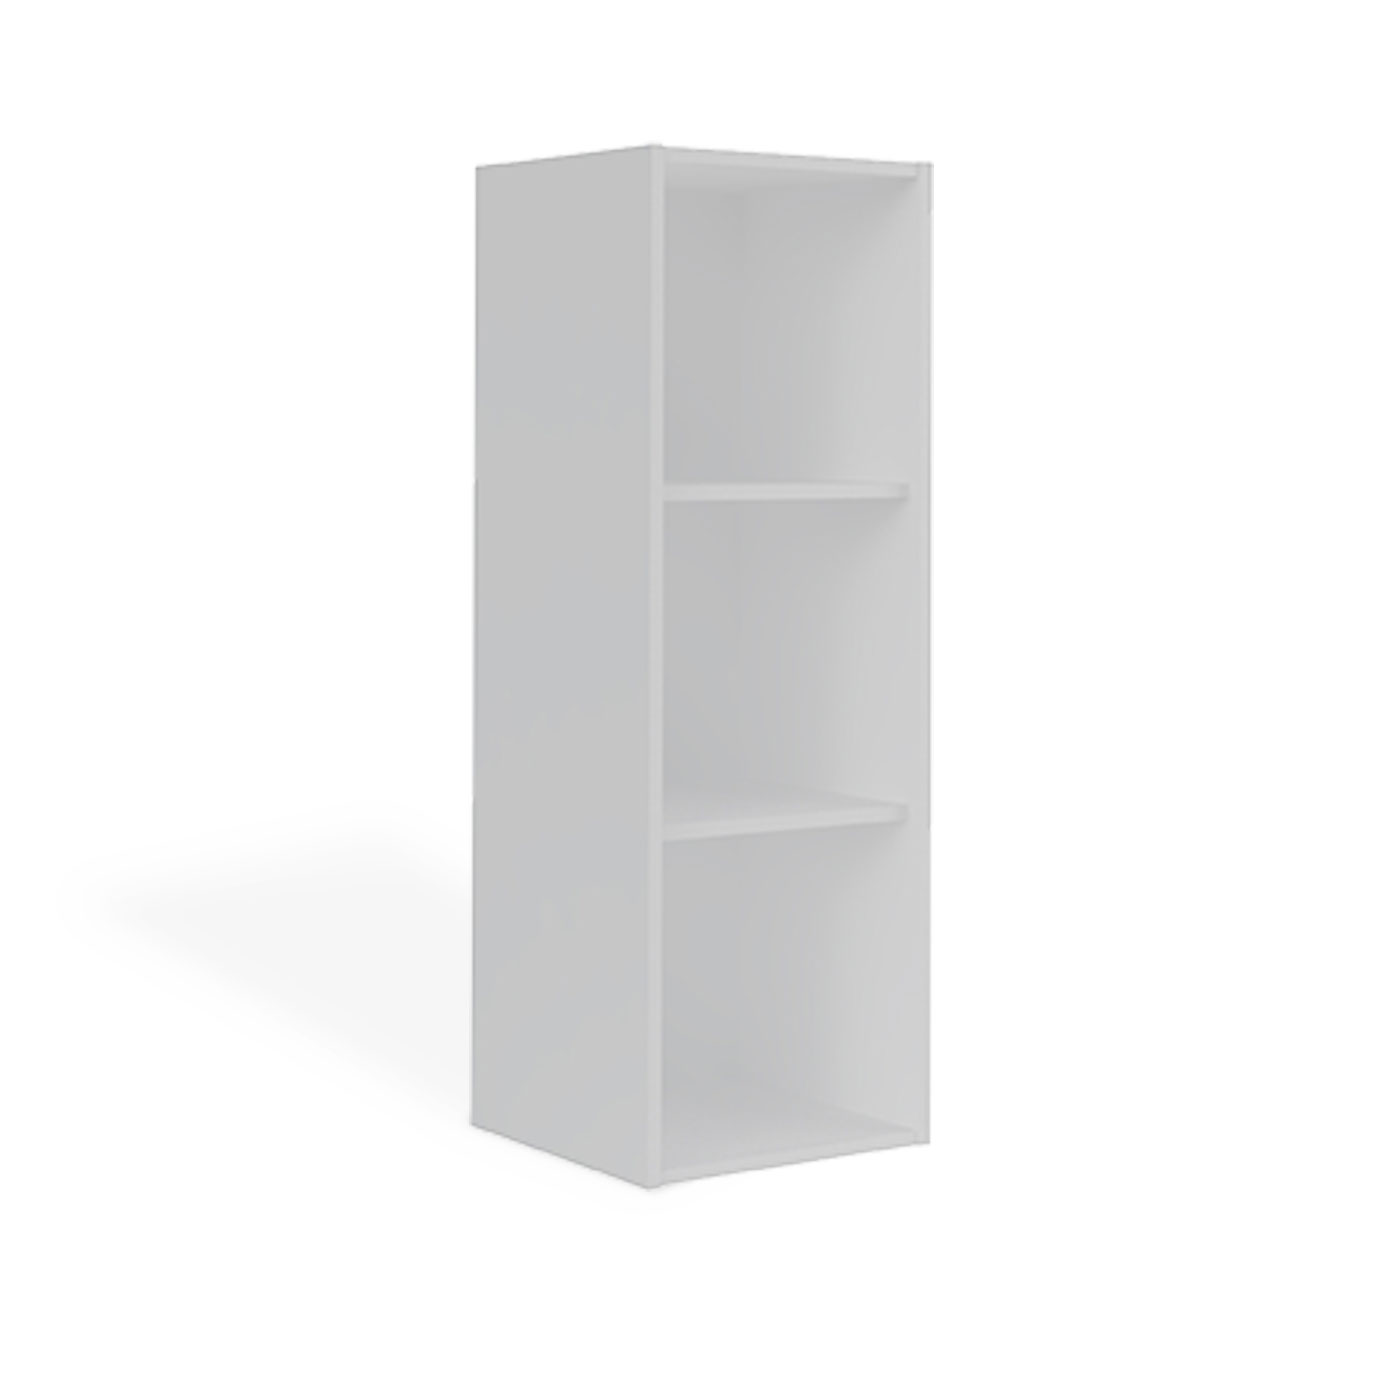 casier de rangement trois cases blanc idkid 39 s. Black Bedroom Furniture Sets. Home Design Ideas